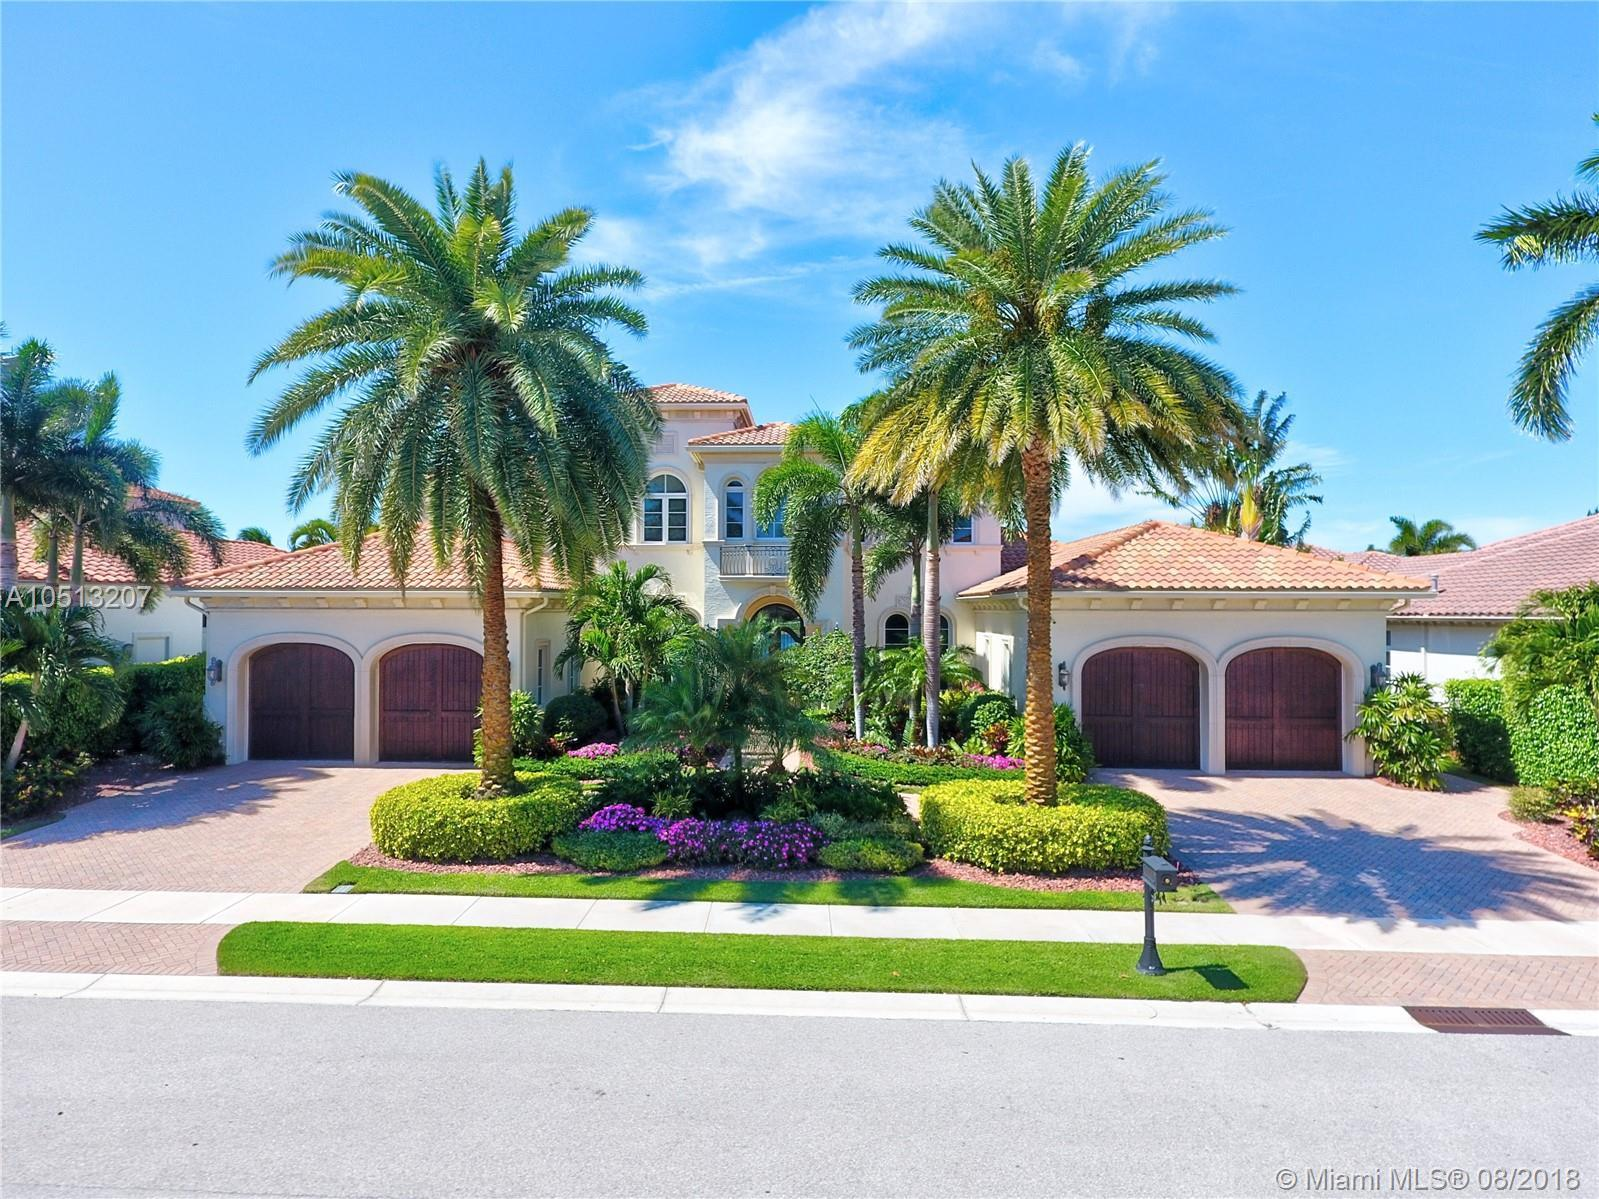 New Home for sale at 646 Hermitage Circle in Palm Beach Gardens